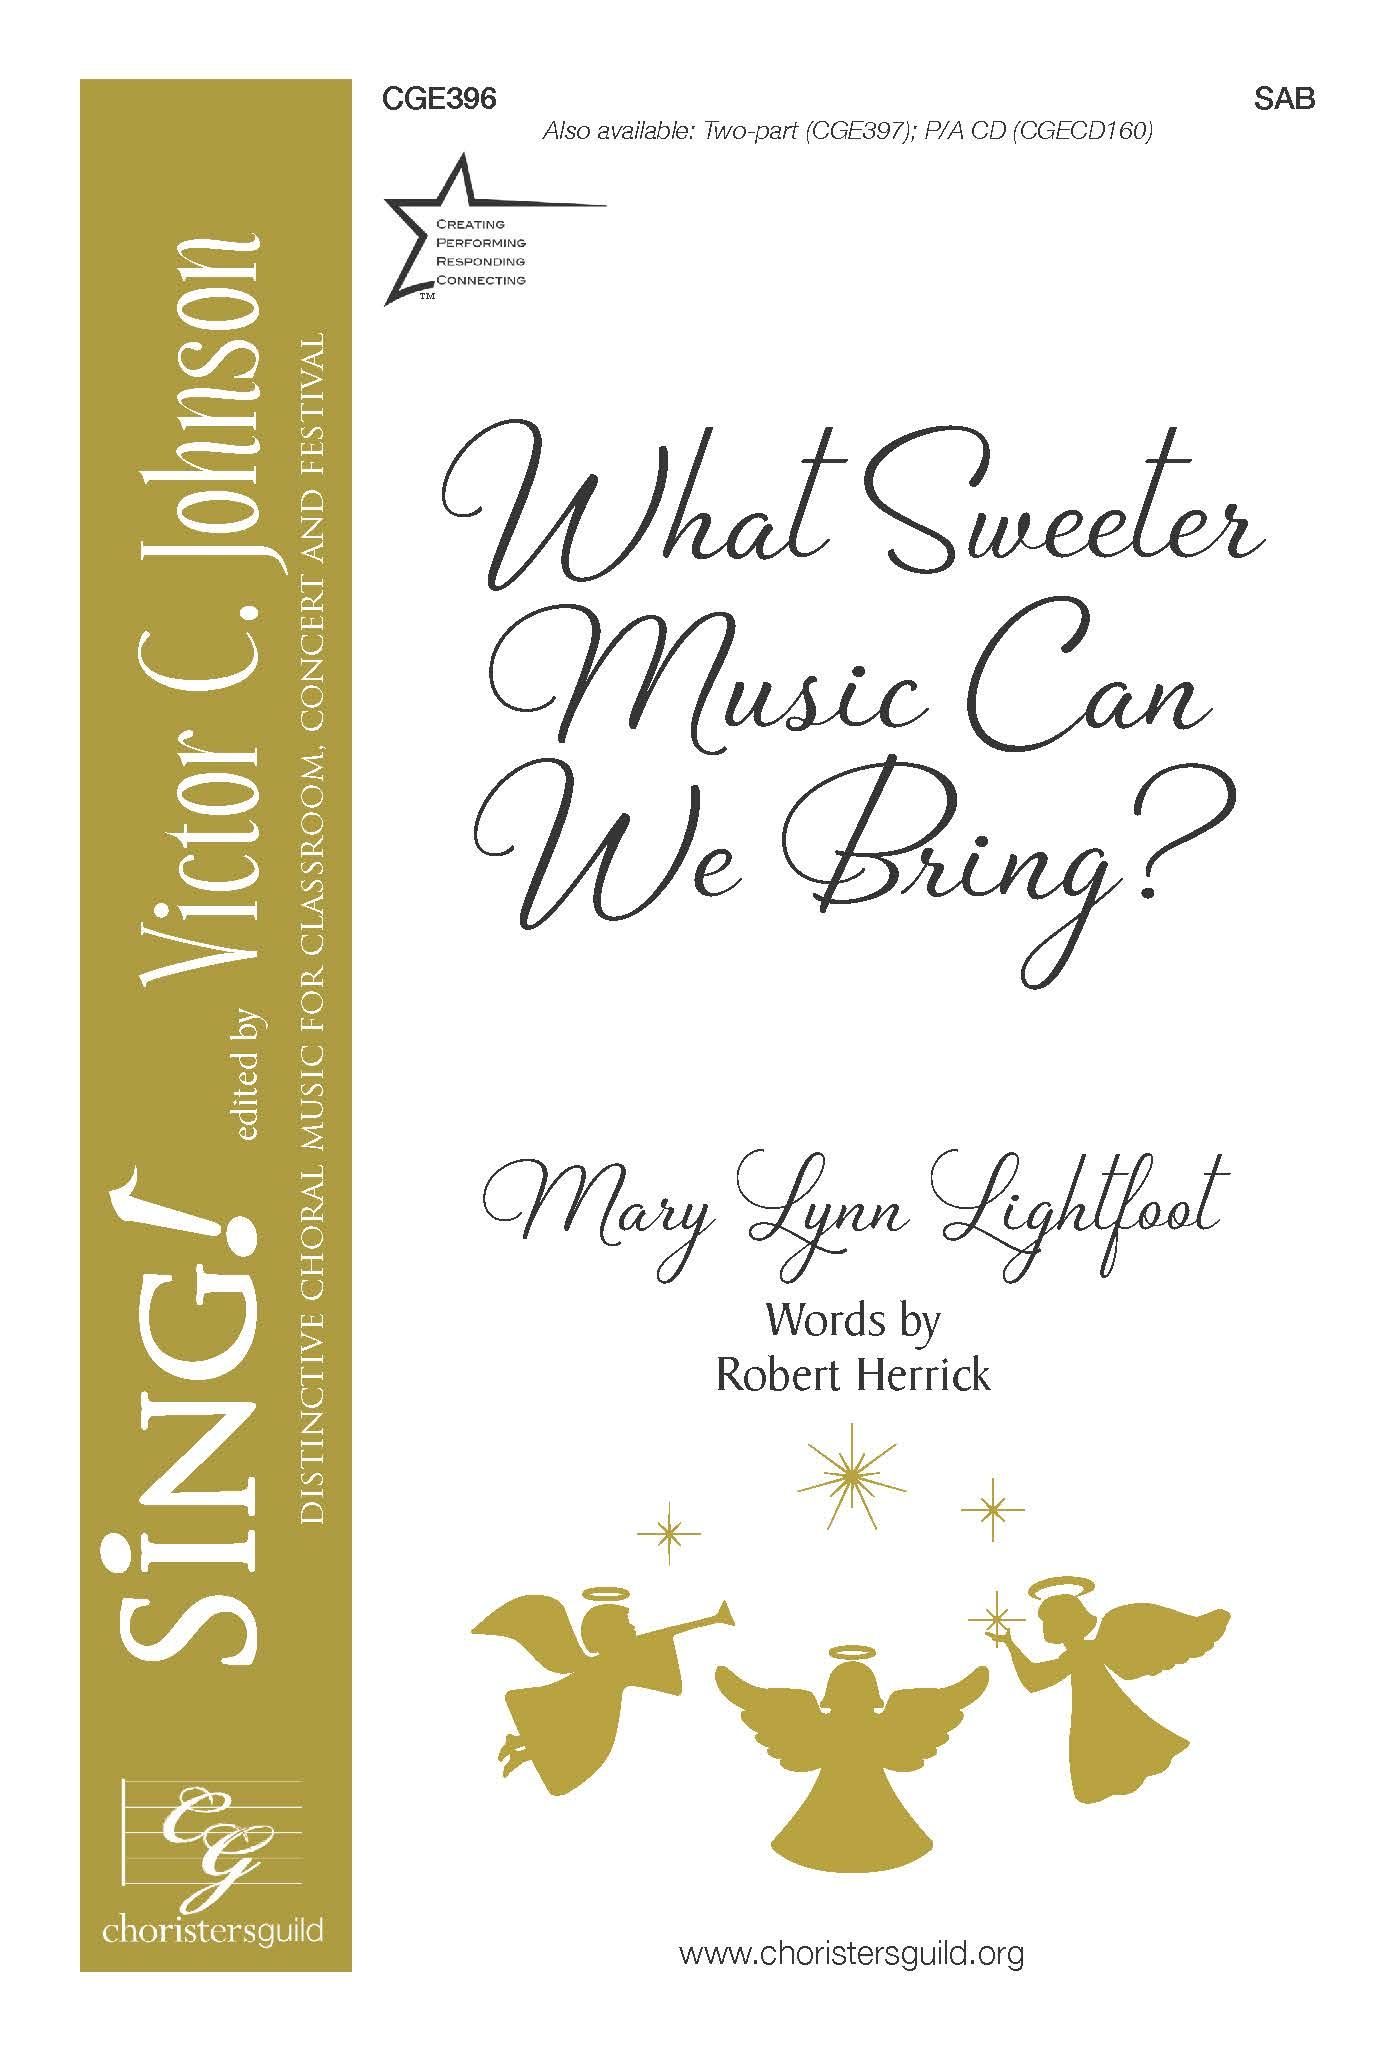 What Sweeter Music Can We Bring? - SAB